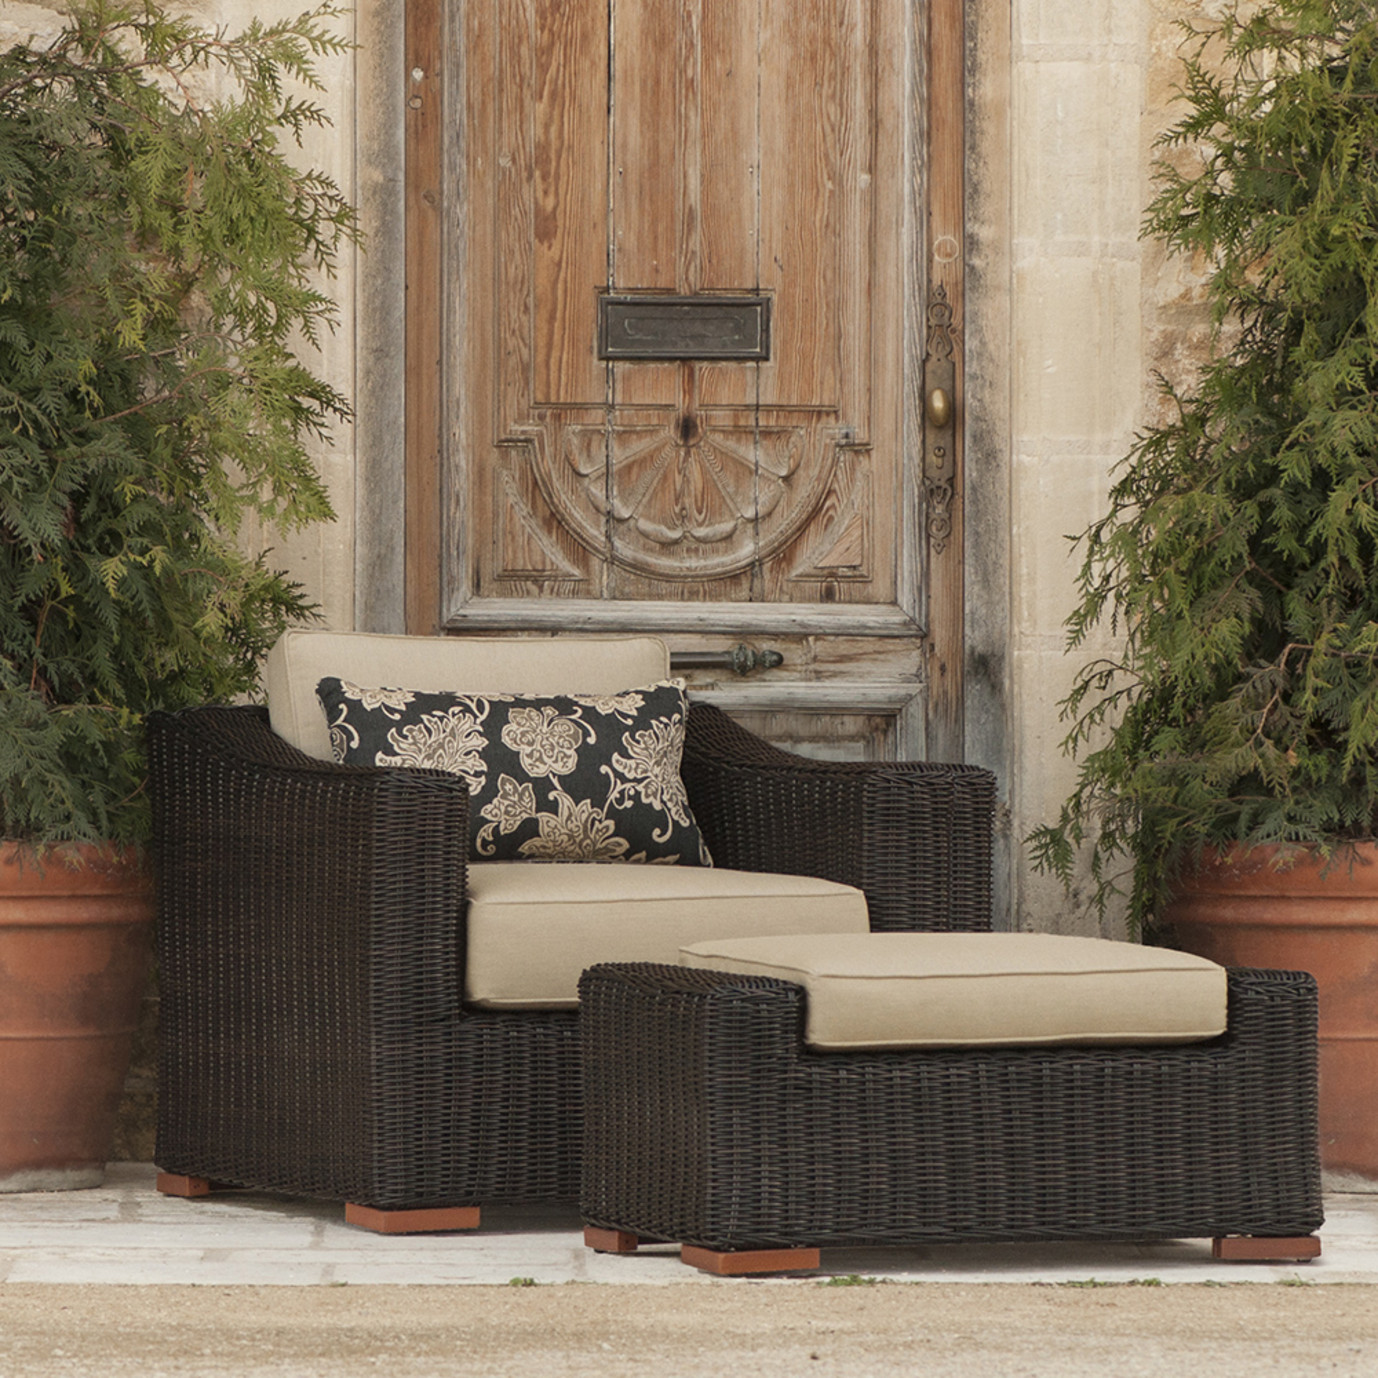 Resort™ Club & Ottoman Set - Espresso/Heather Beige